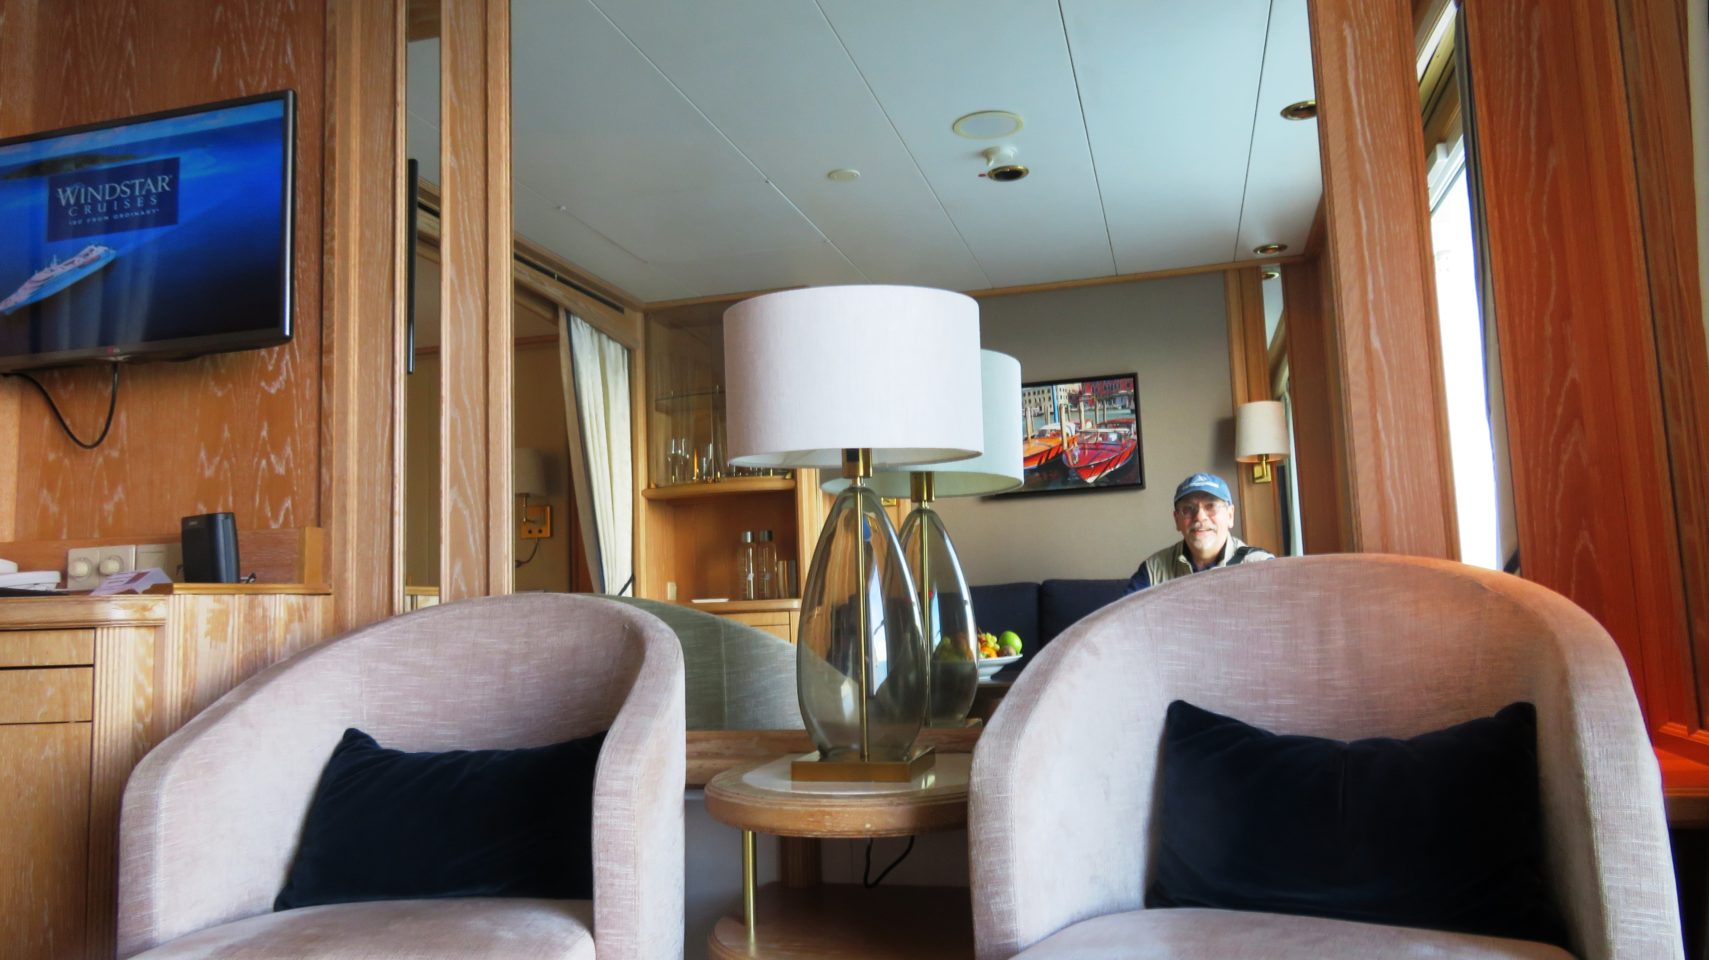 Windstar Cruises ~ Denis enjoying the comfort of the living area of our ideal cabin